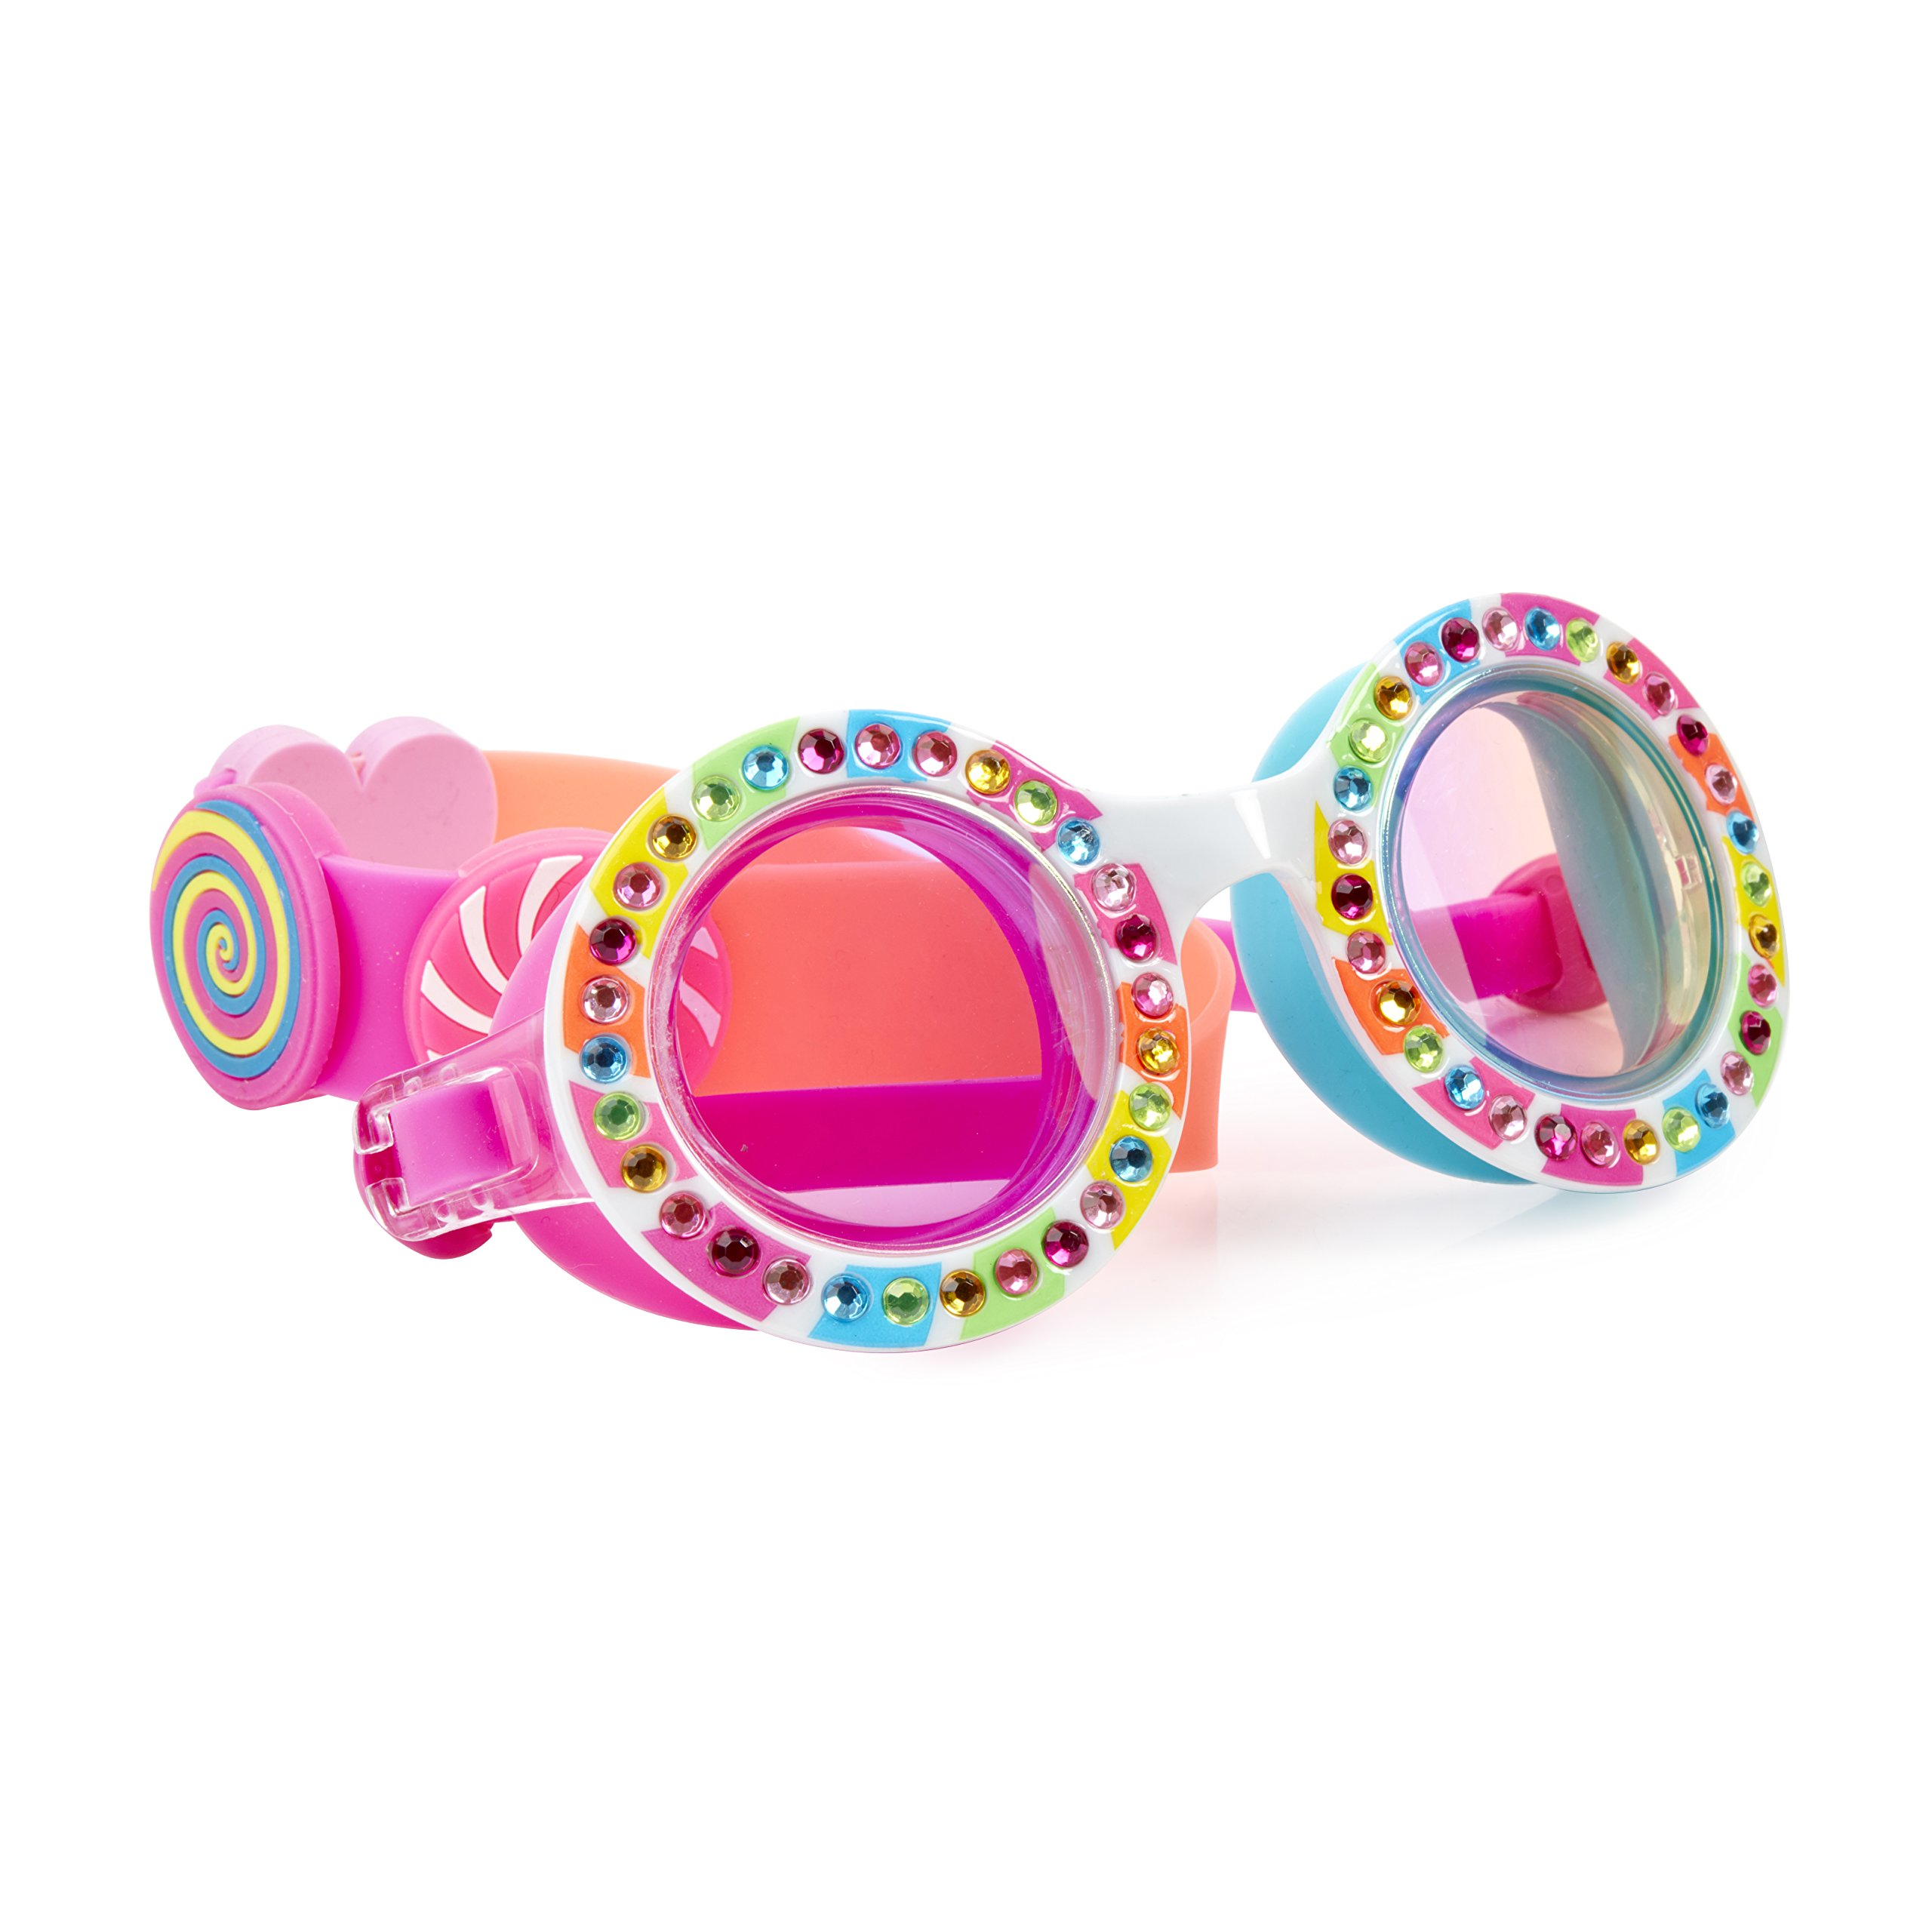 Lollipop Themed Swimming Goggles For Kids by Bling2O - Anti Fog, No Leak, Non Slip and UV Protection - Pop Sugar Round Colored Fun Water Accessory Includes Hard Case